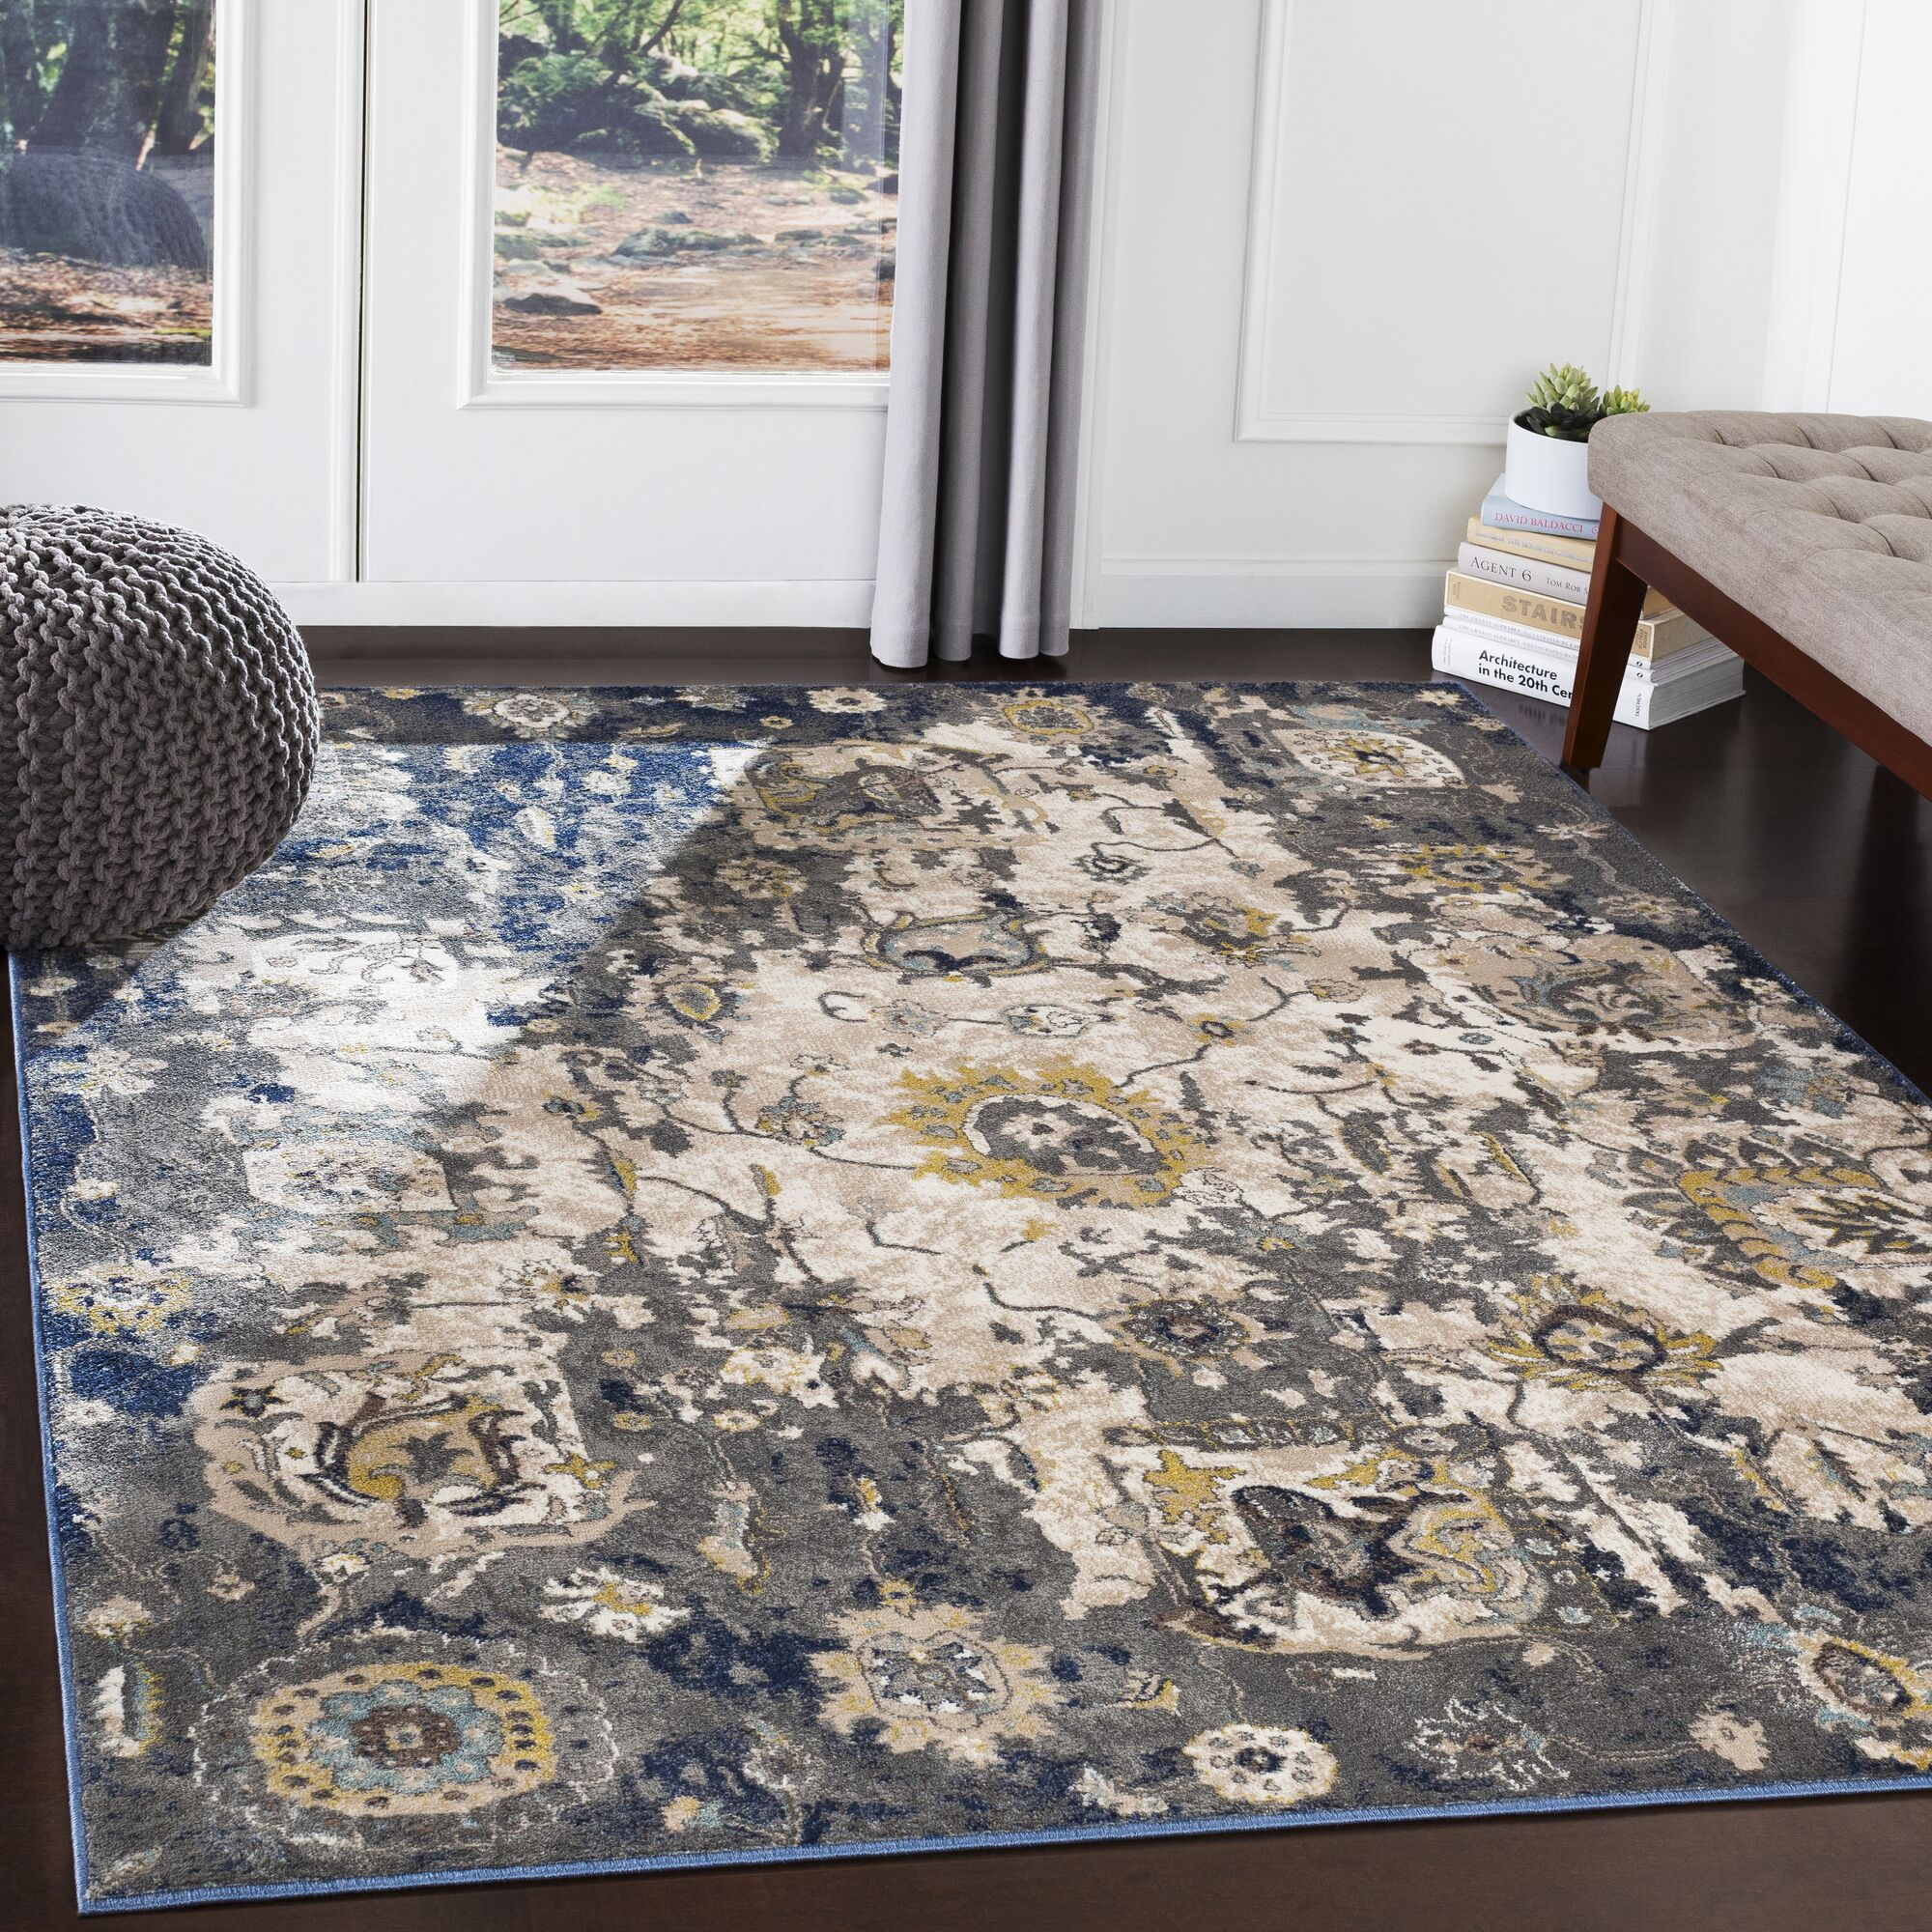 Valmar Distressed Charcoal/Navy Area Rug Rug Size: Rectangle 5'3